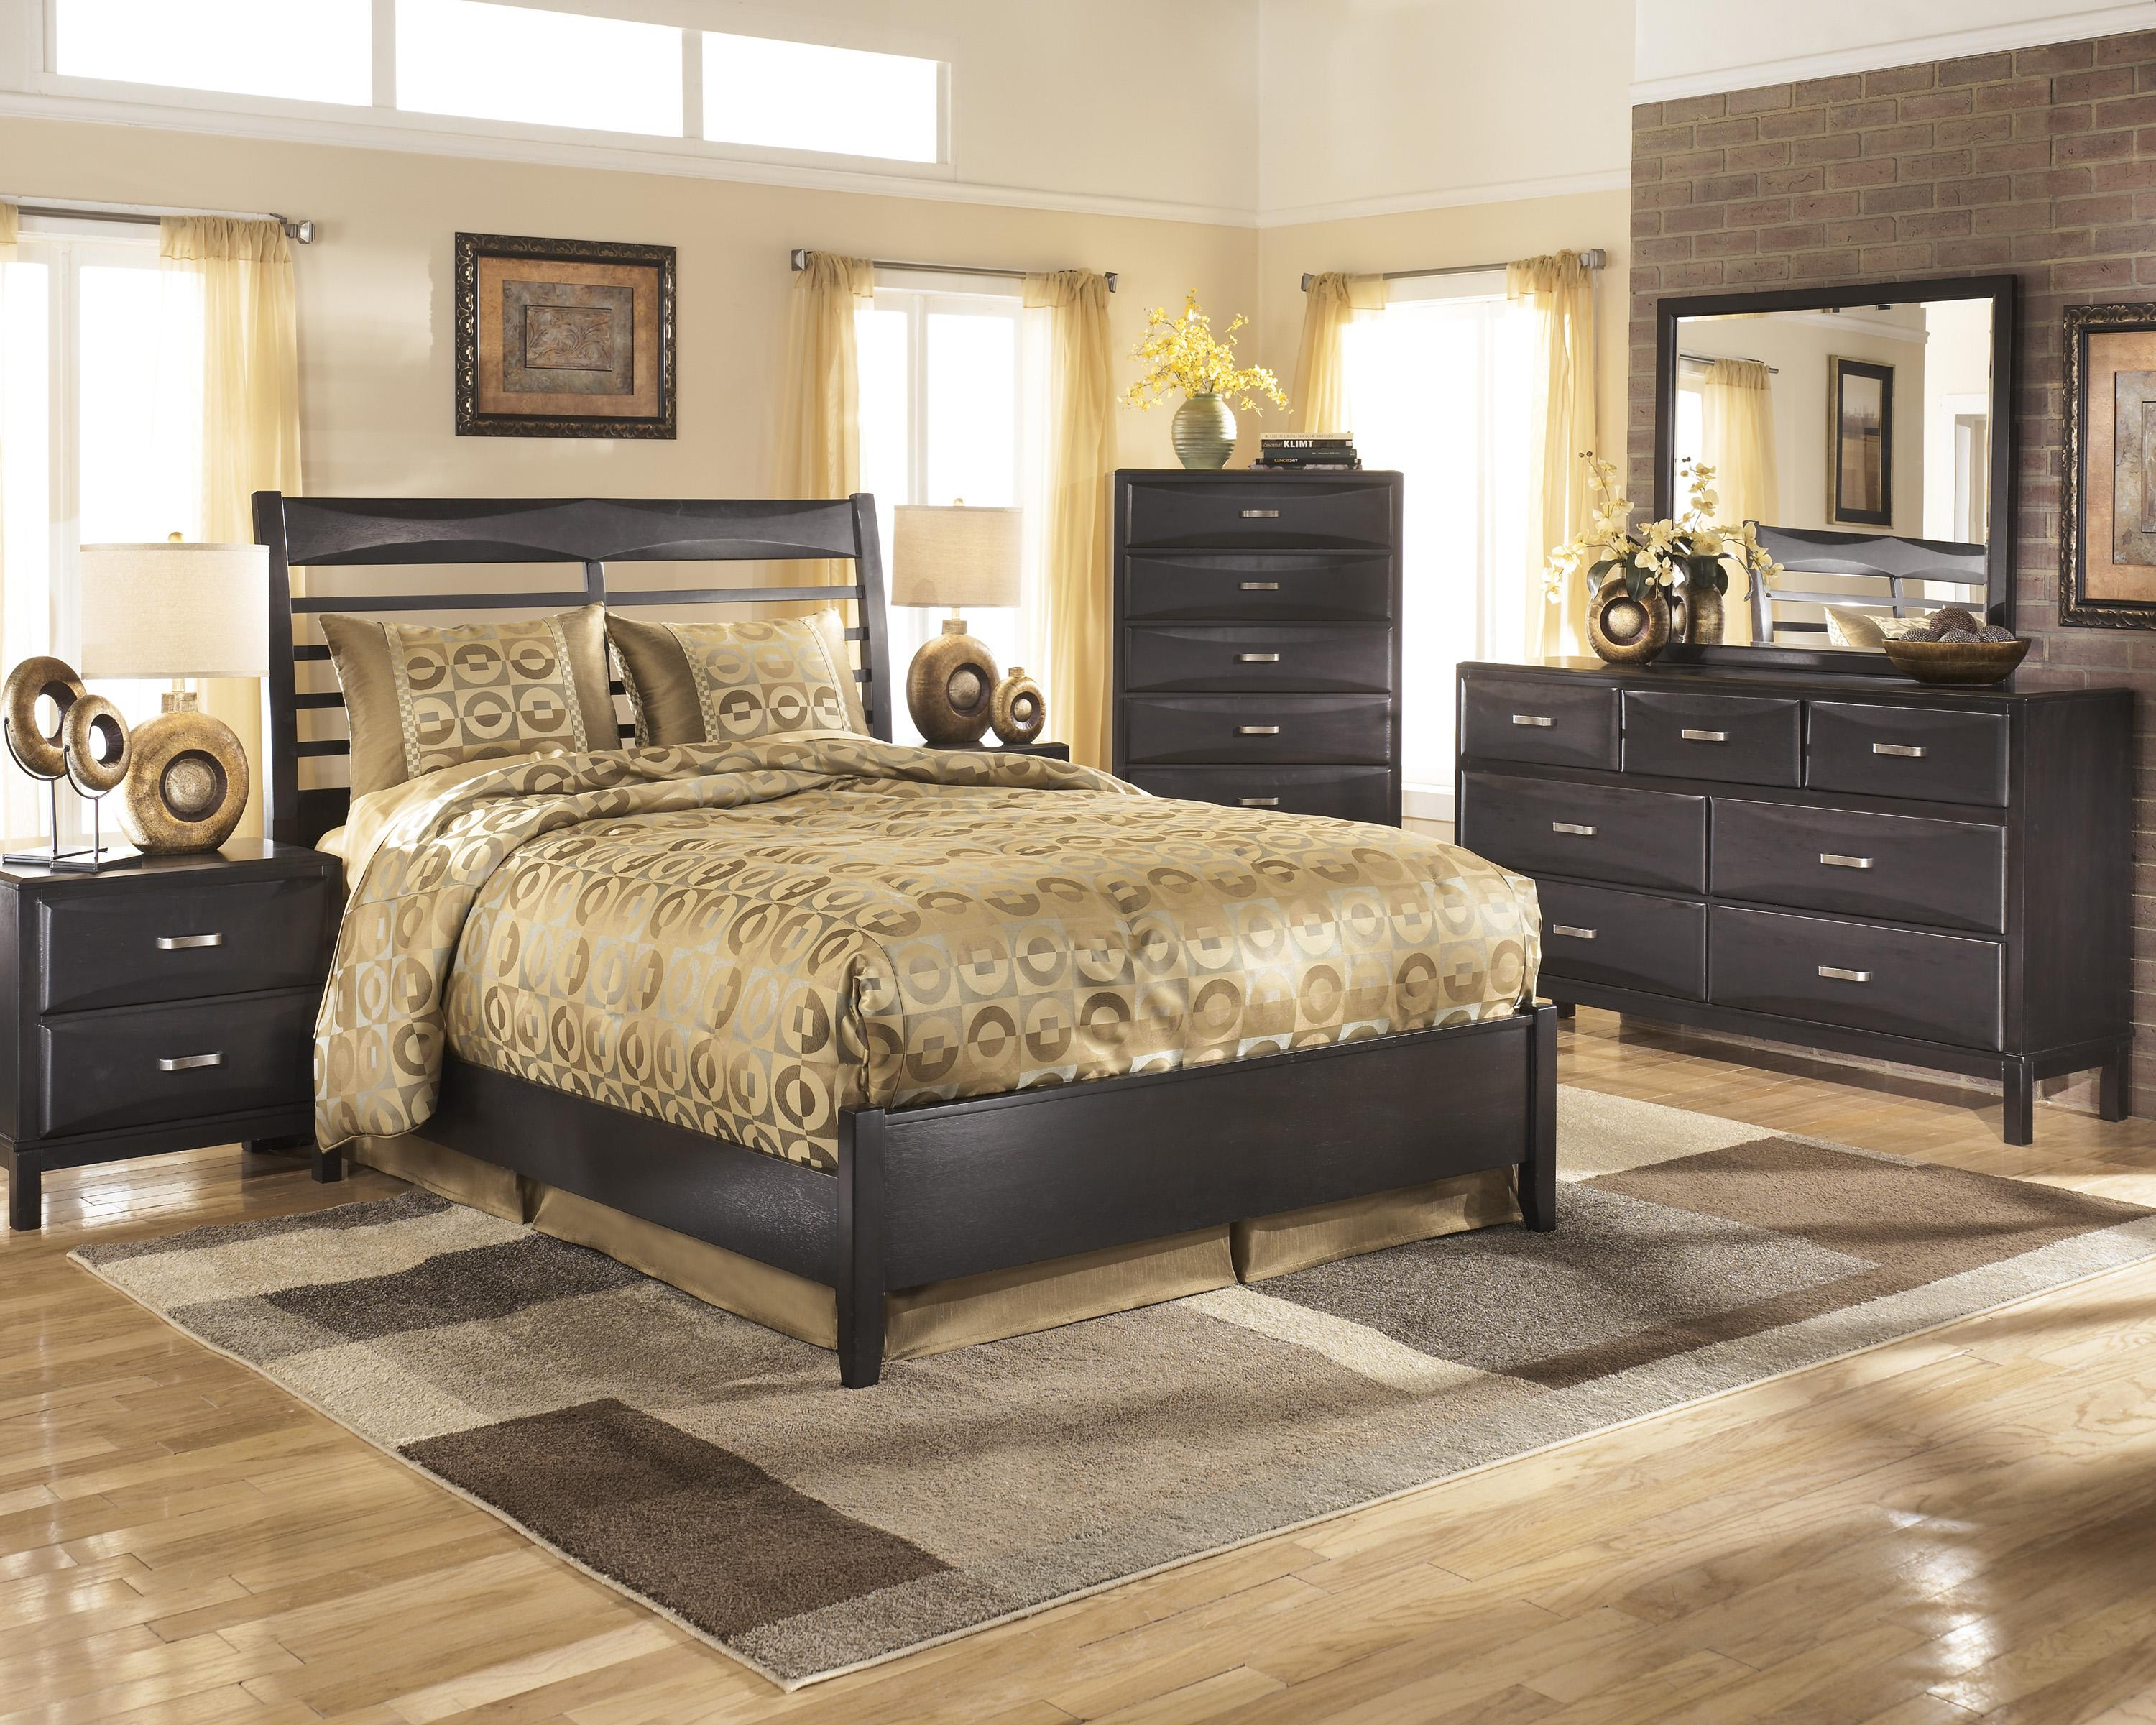 Ashley Furniture Kira Queen Bedroom Group - Item Number: B473 Q Bedroom Group 3